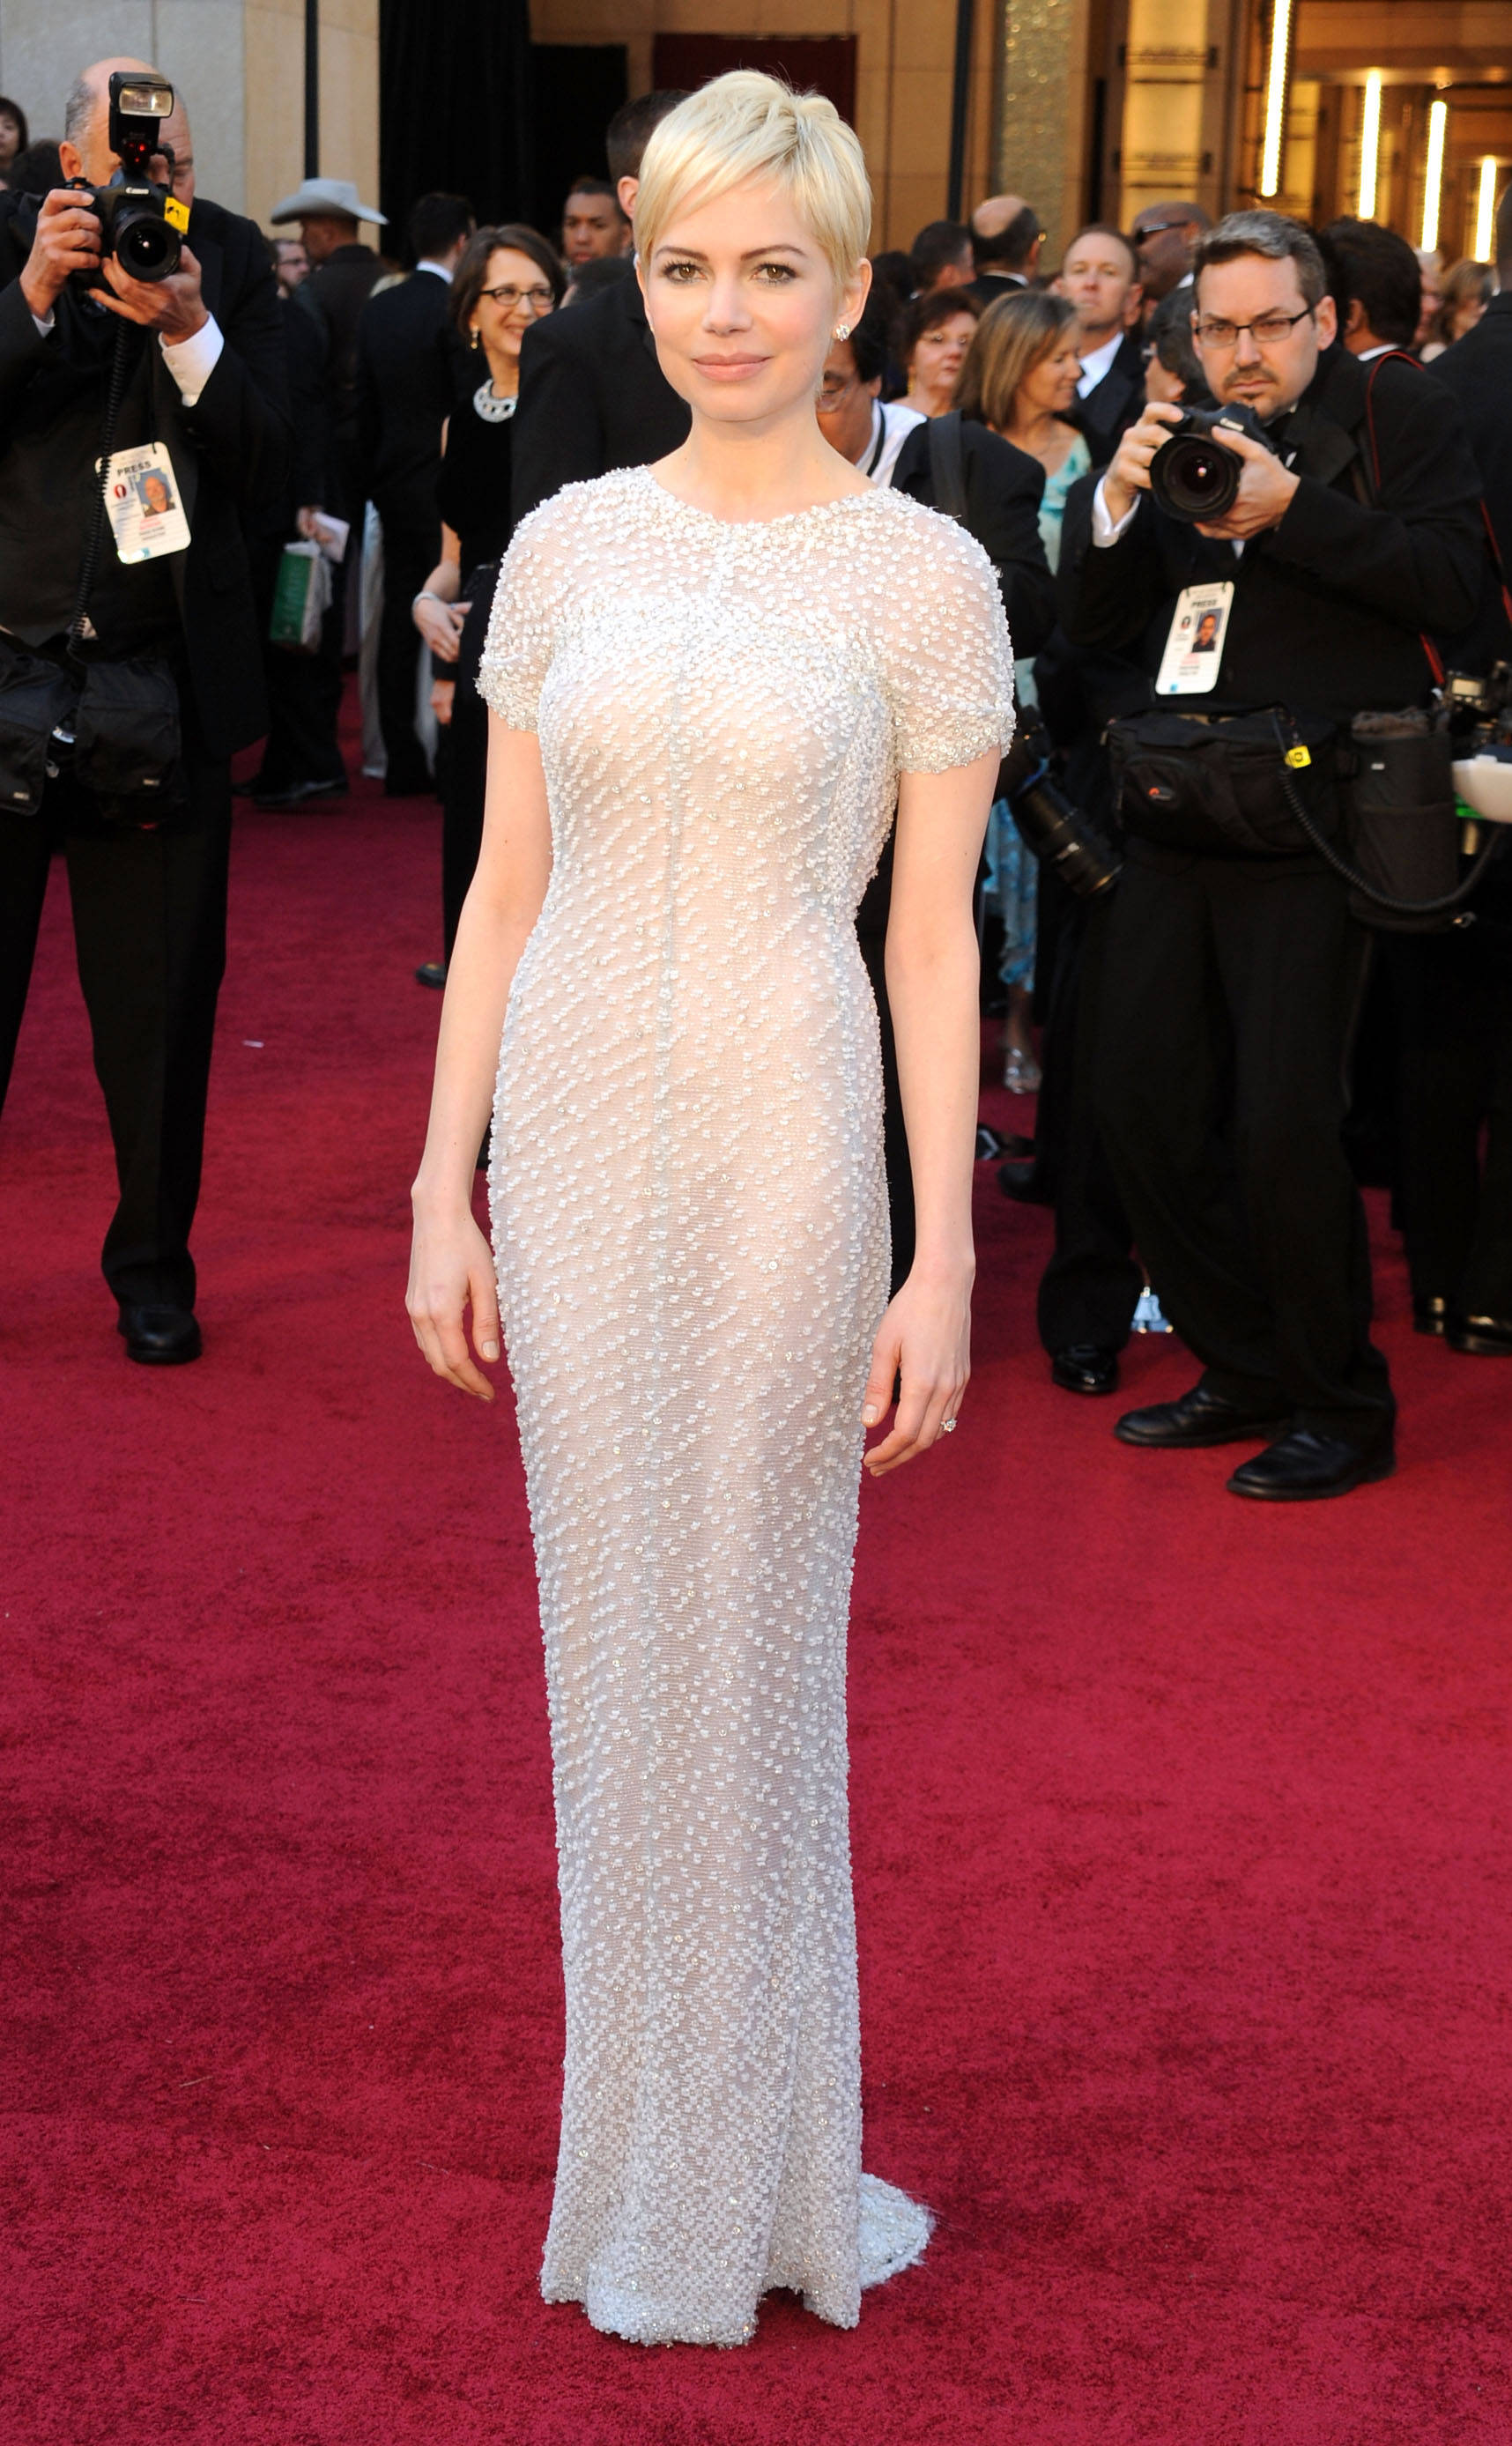 HOLLYWOOD, CA - FEBRUARY 27:  Actress Michelle Williams arrives at the 83rd Annual Academy Awards held at the Kodak Theatre on February 27, 2011 in Hollywood, California.  (Photo by Frazer Harrison/Getty Images)